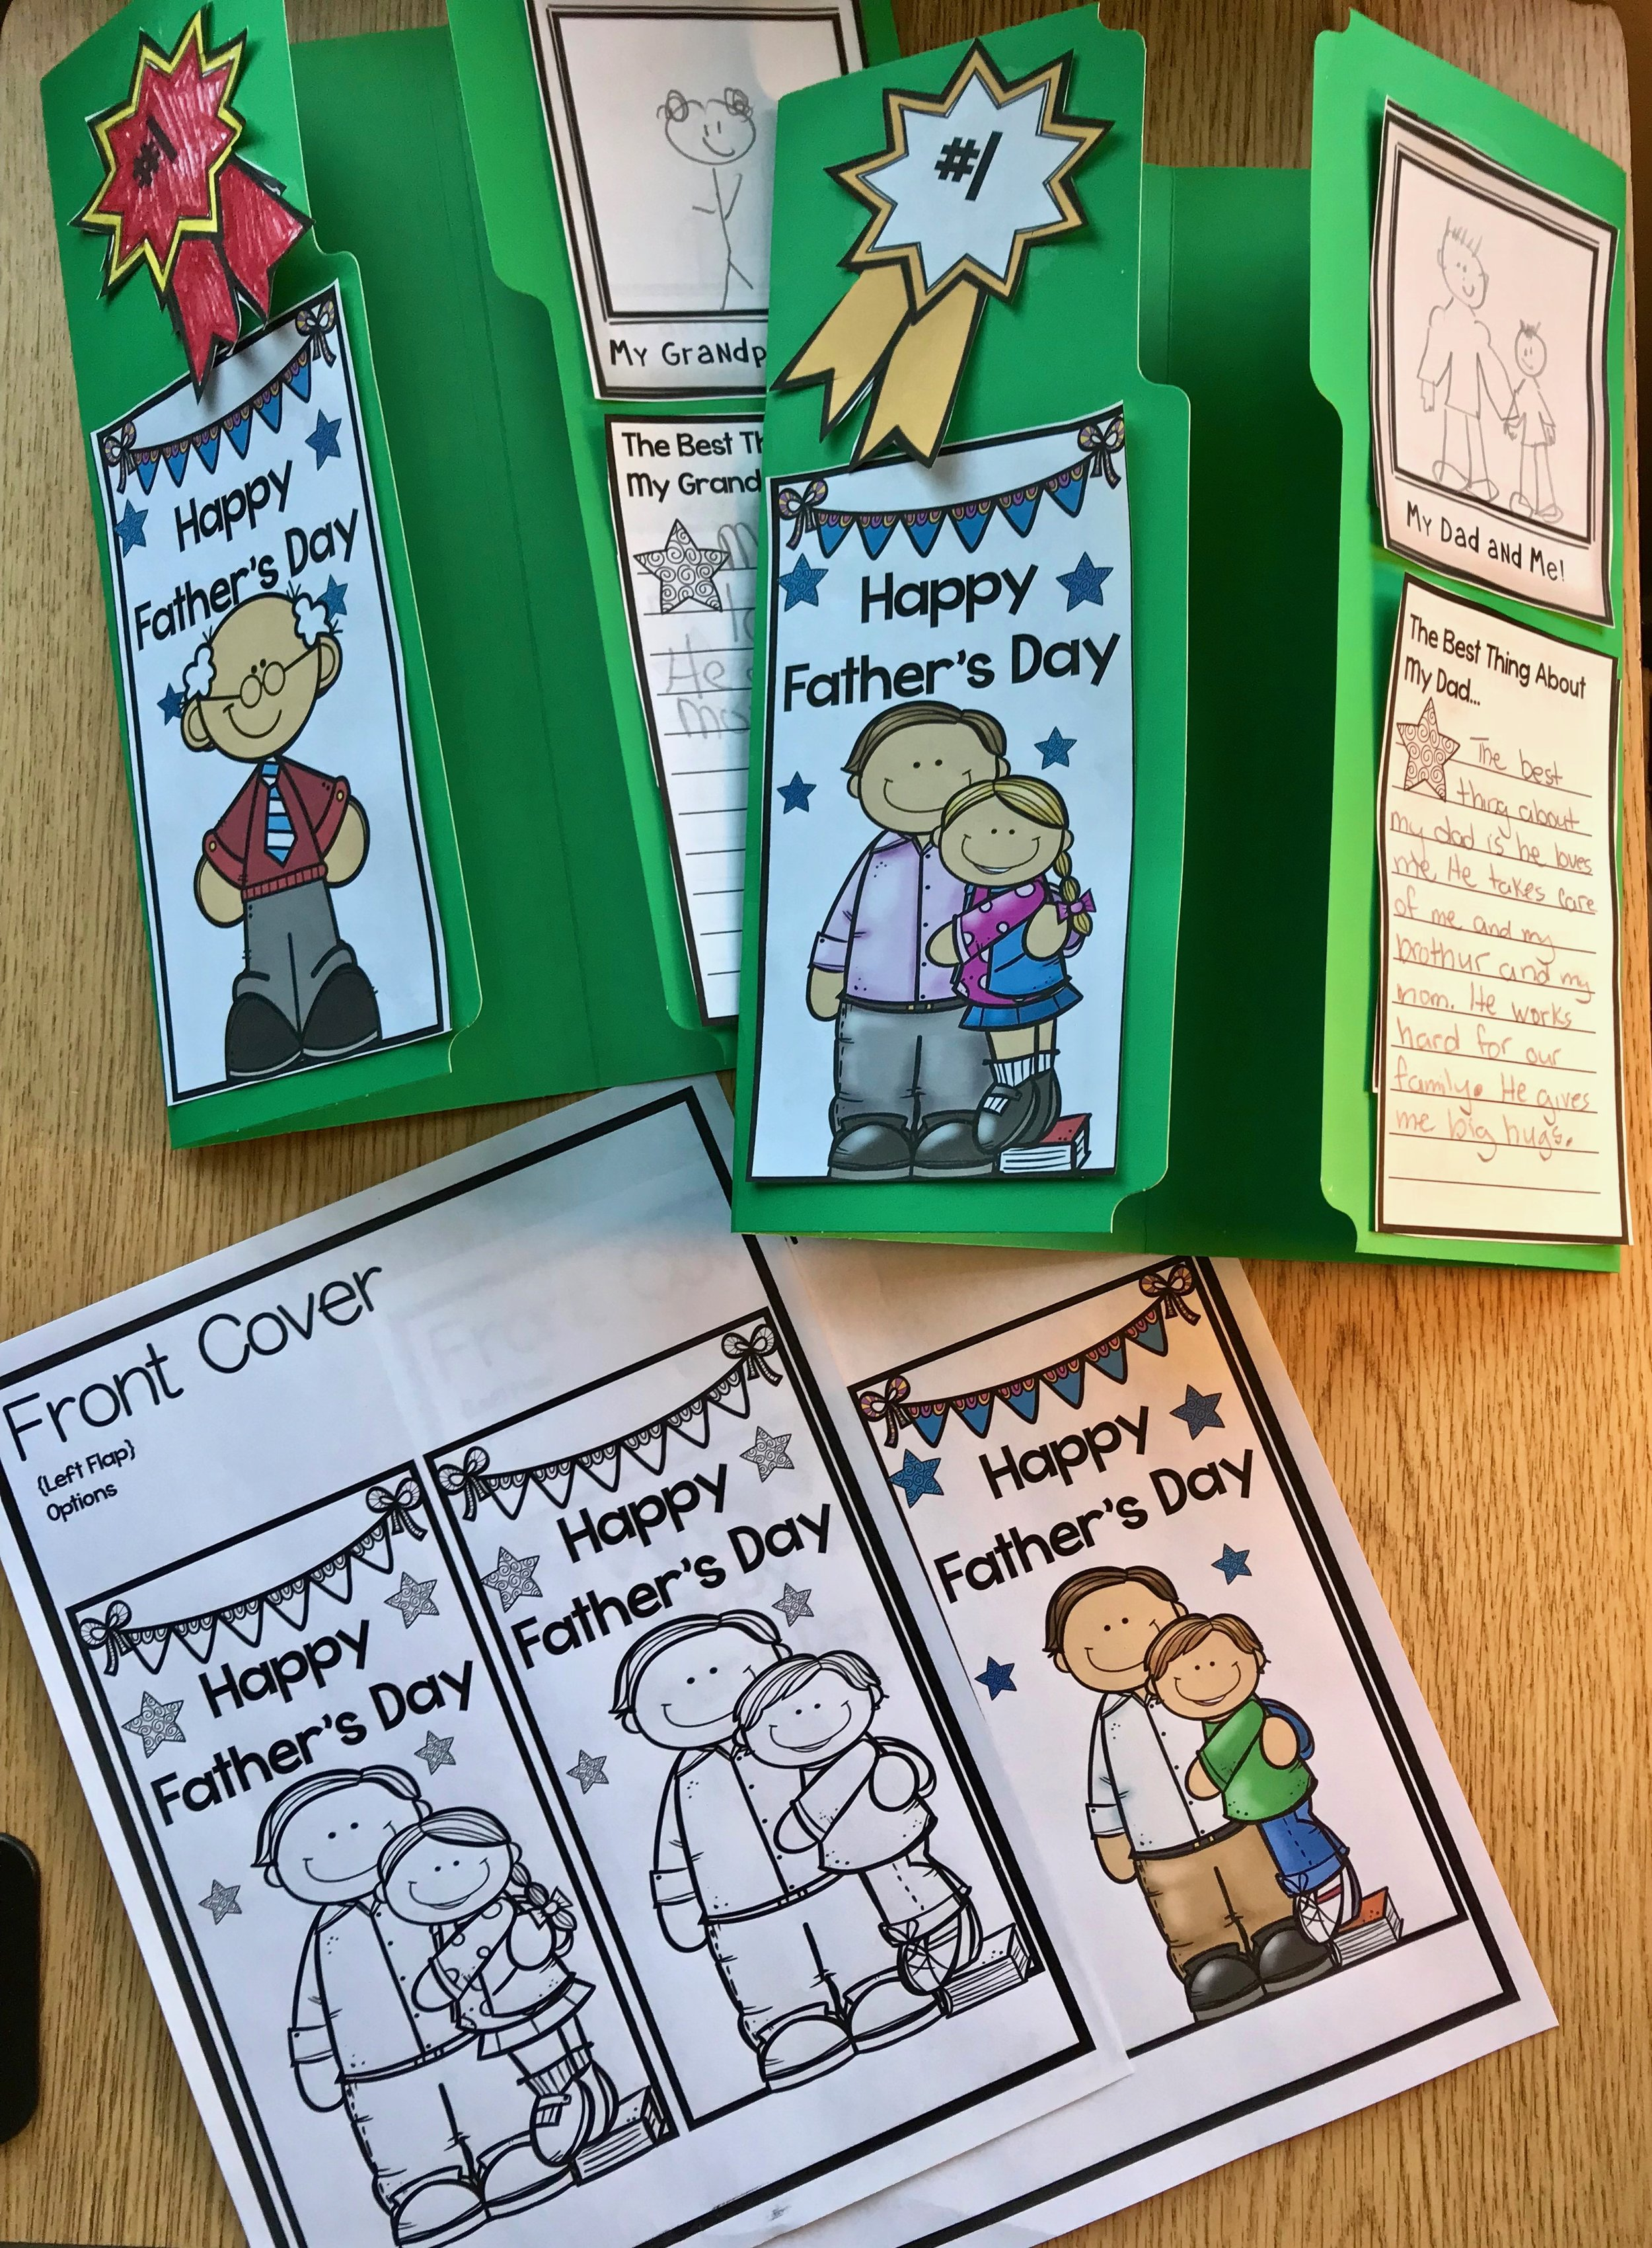 Fabulous Father's Day Craft for Kids to Make Put together the cover with choices